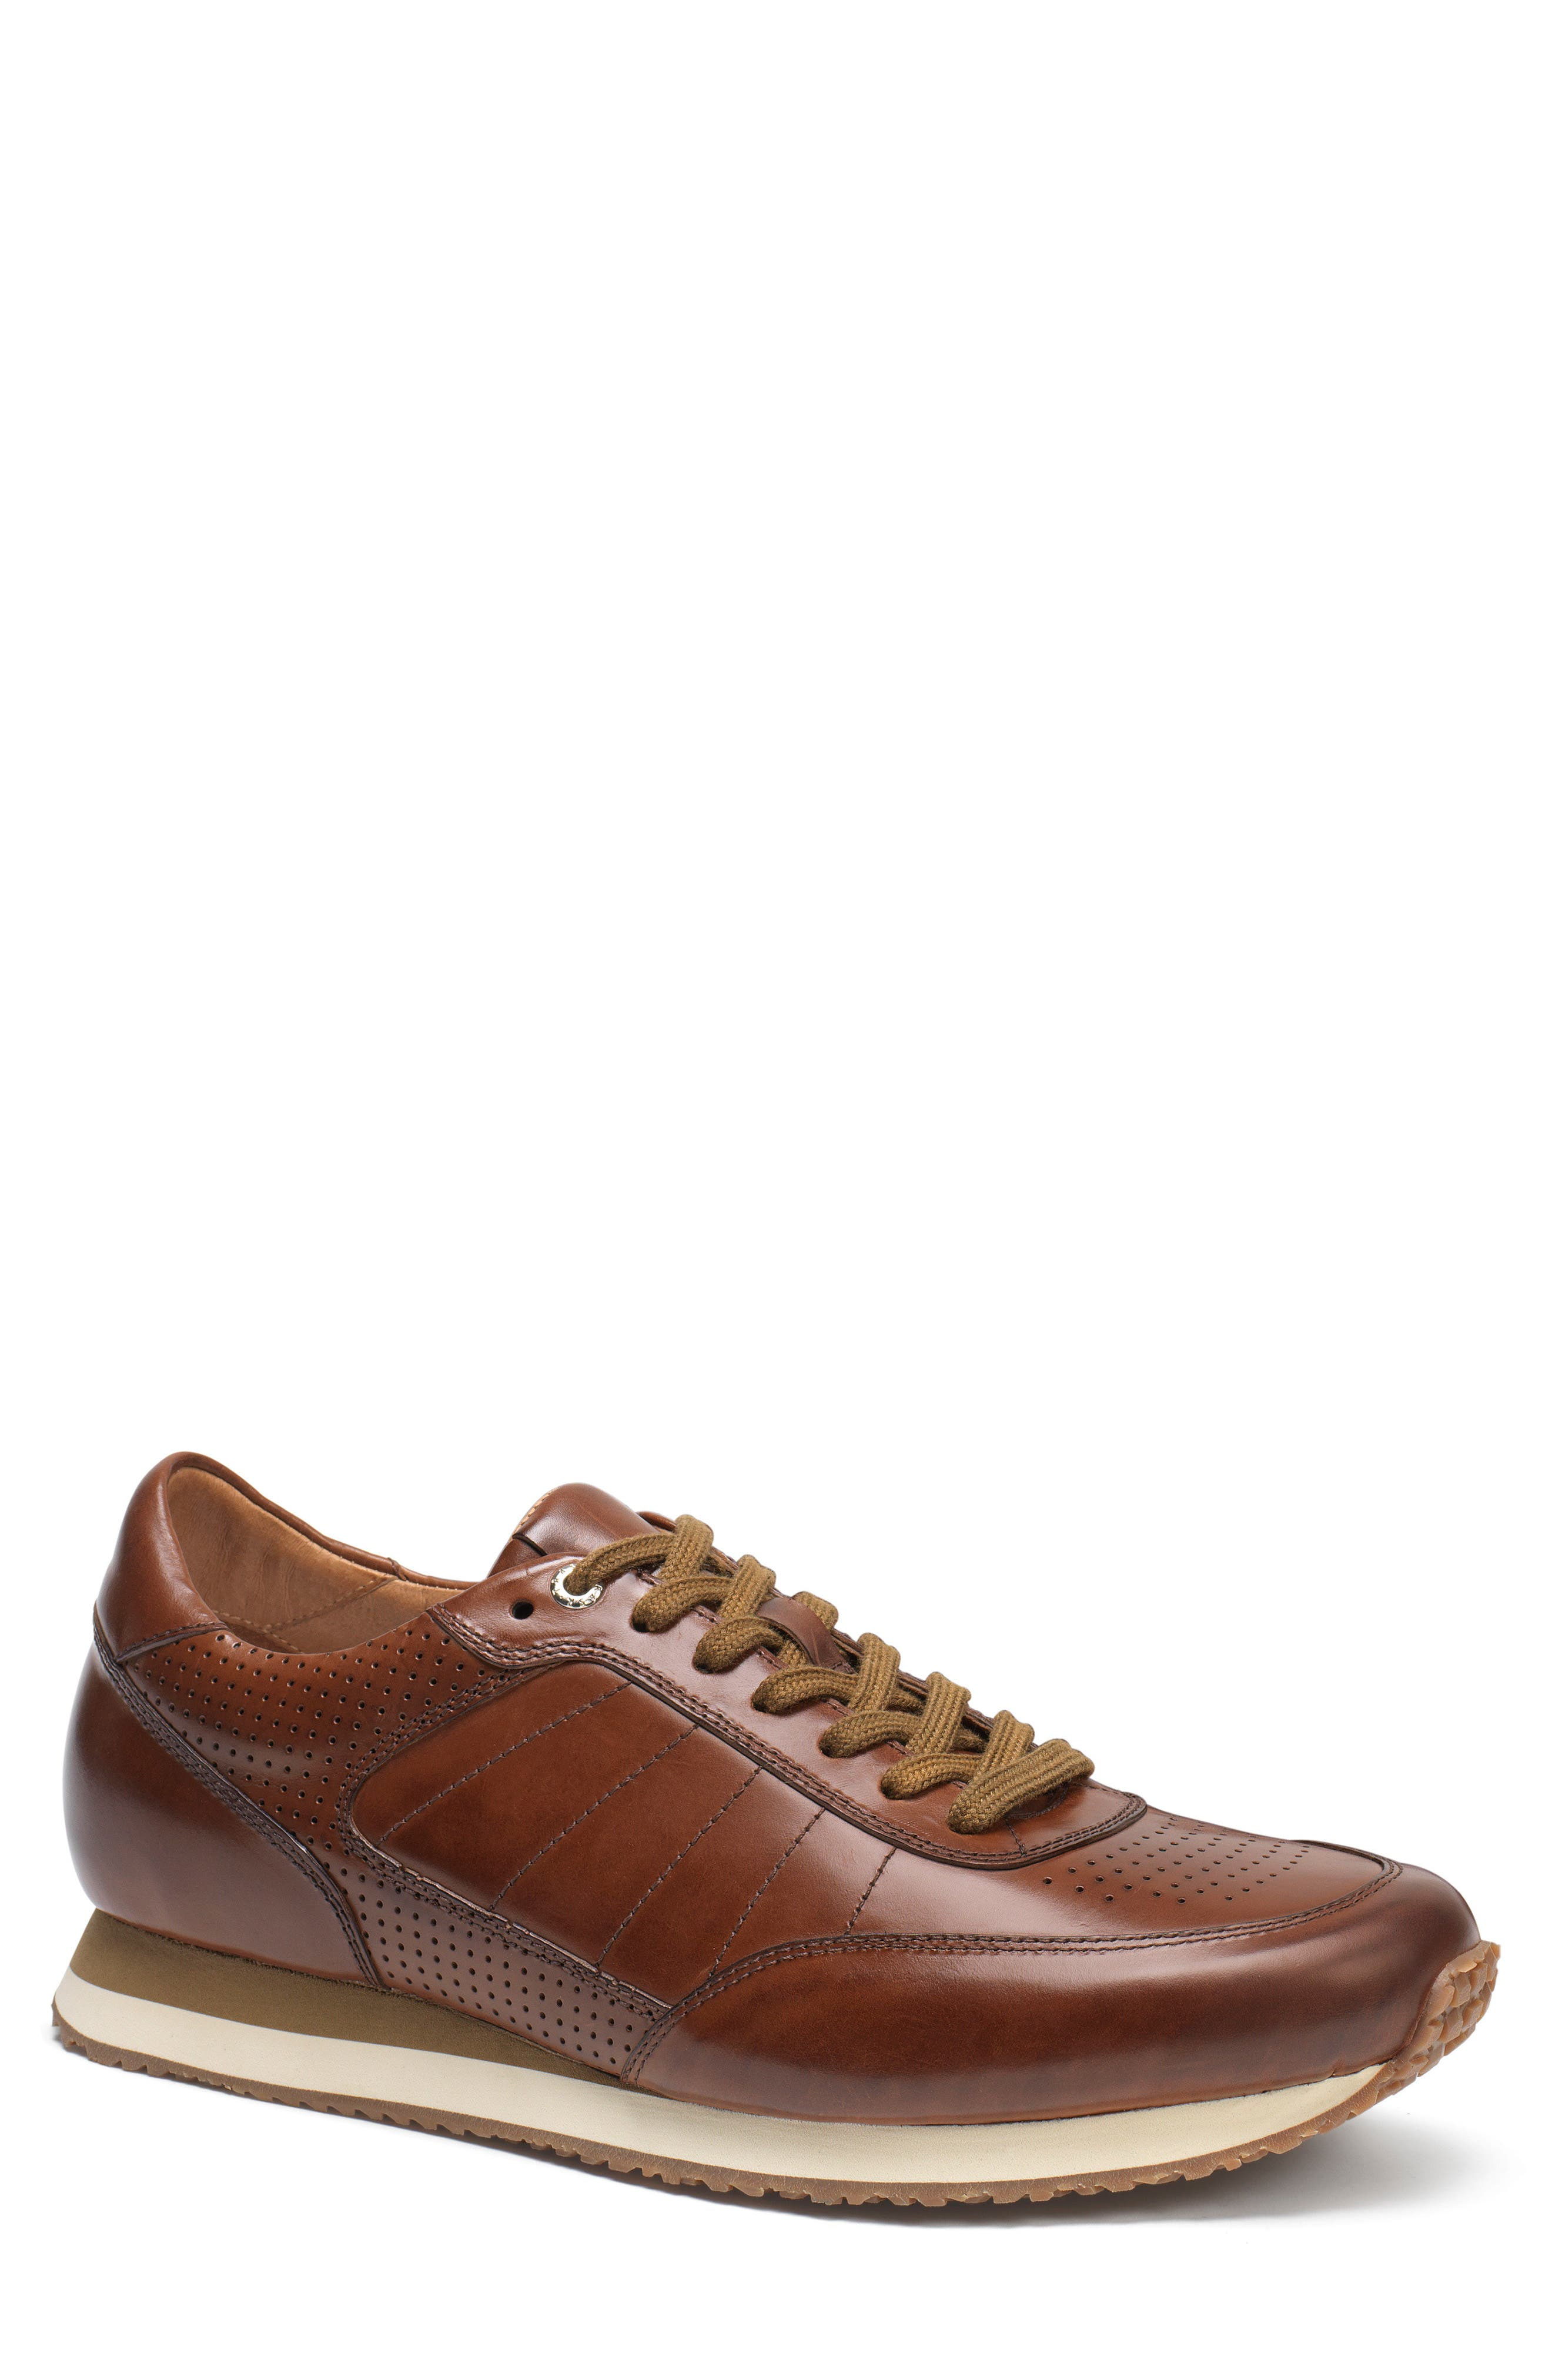 Aiden Sneaker,                         Main,                         color, Brown Leather